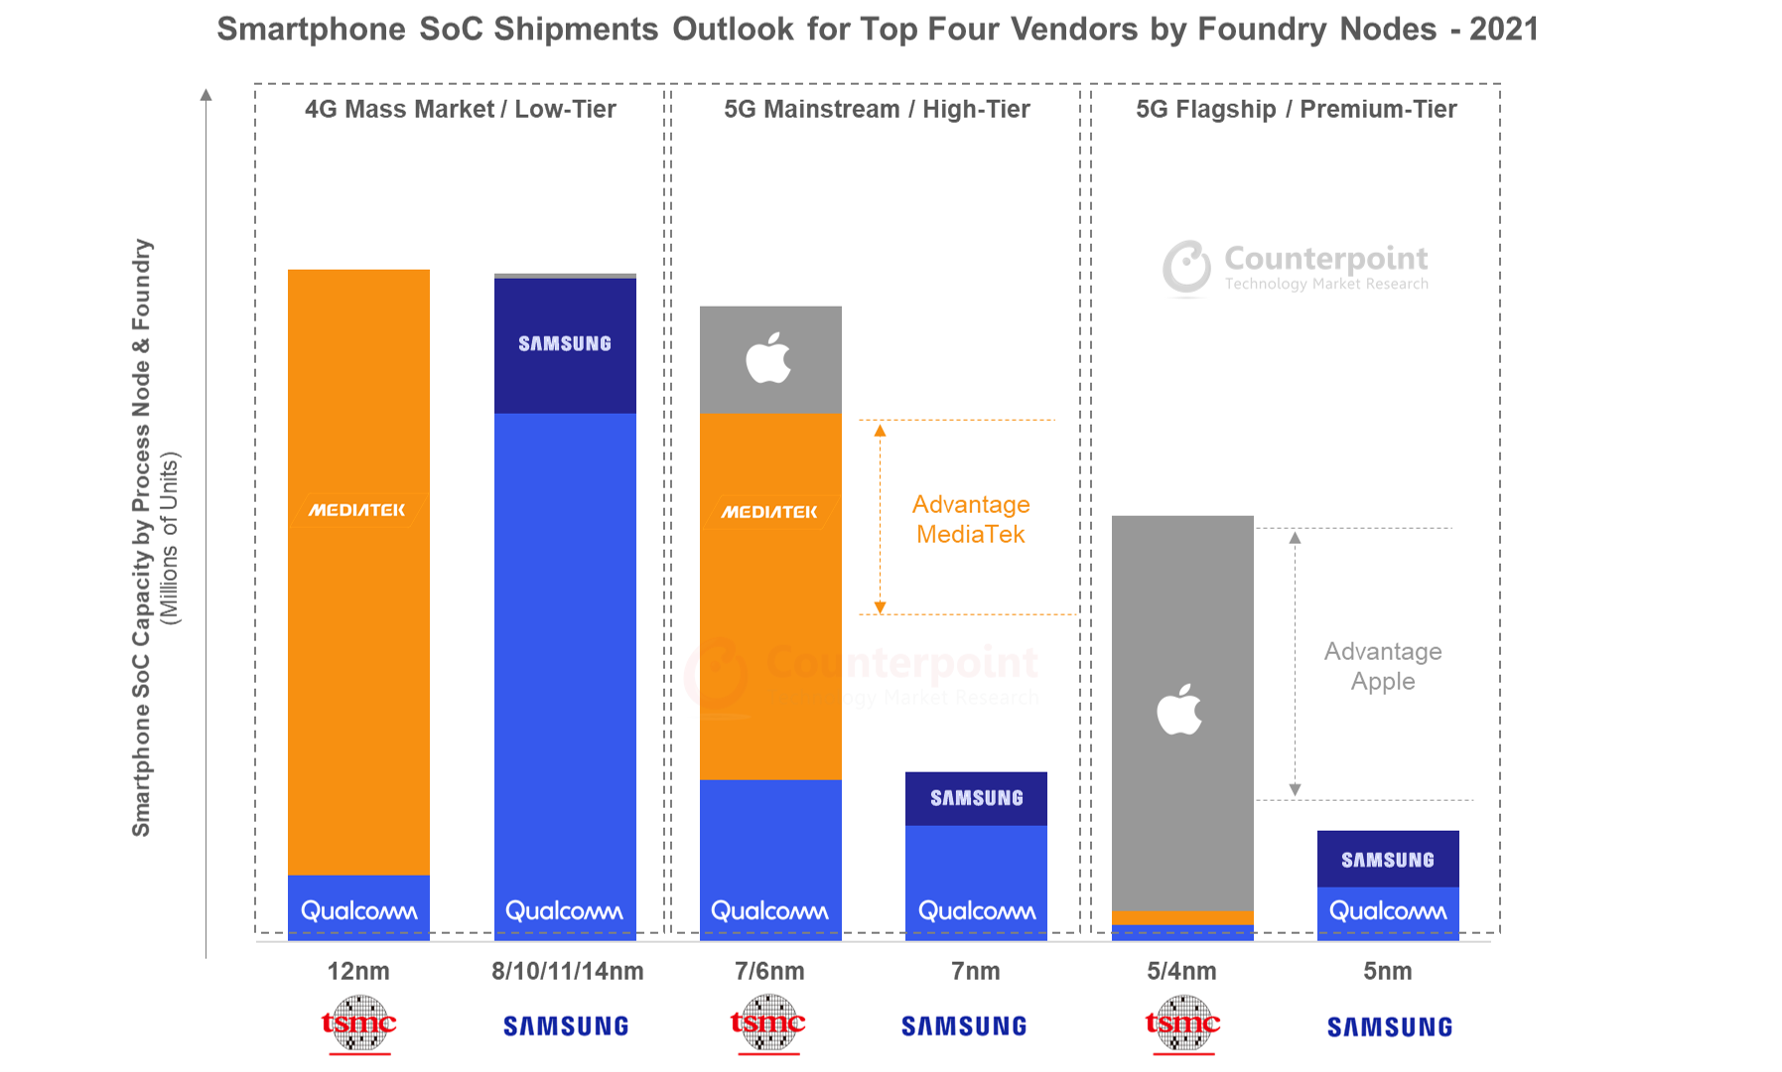 Counterpoint Research Smartphone SoC Shipments Outlook for Top Four Vendors by Foundry Nodes - 2021